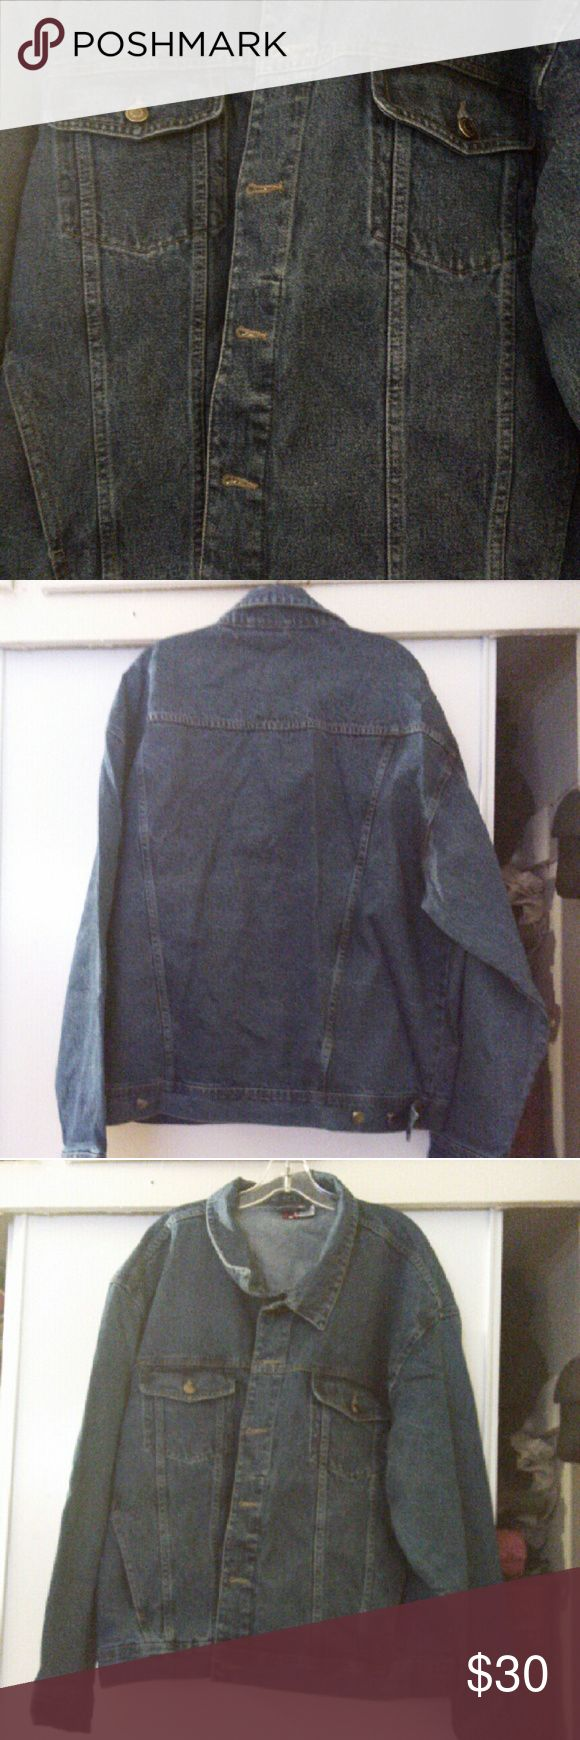 Mens jean jacket XXL Men's Jean jacket with chest pockets and adjustment buttons to make a little more fitted Jackets & Coats Jean Jackets